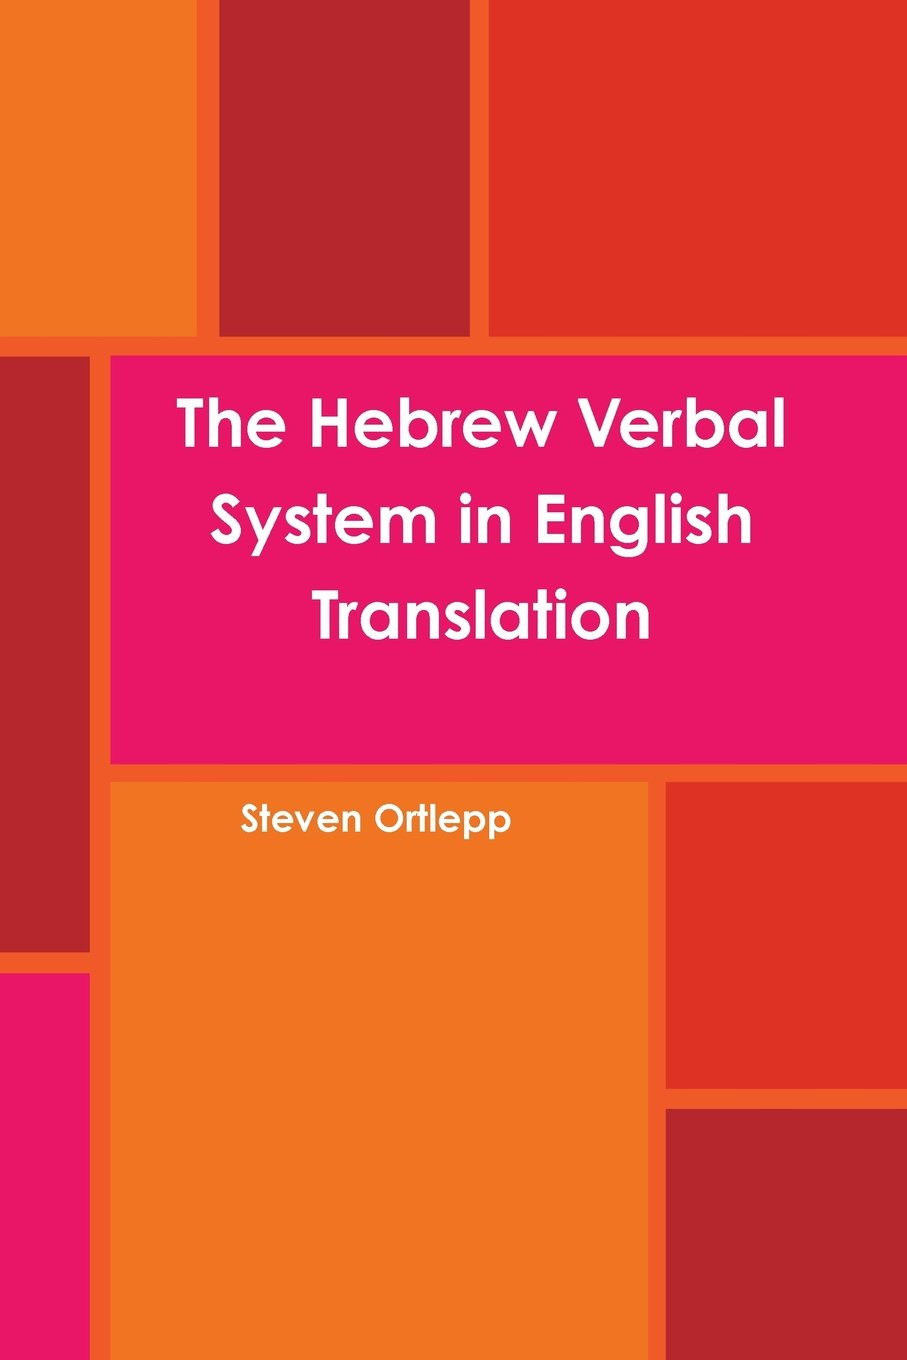 The Hebrew Verbal System in English Translation PDF